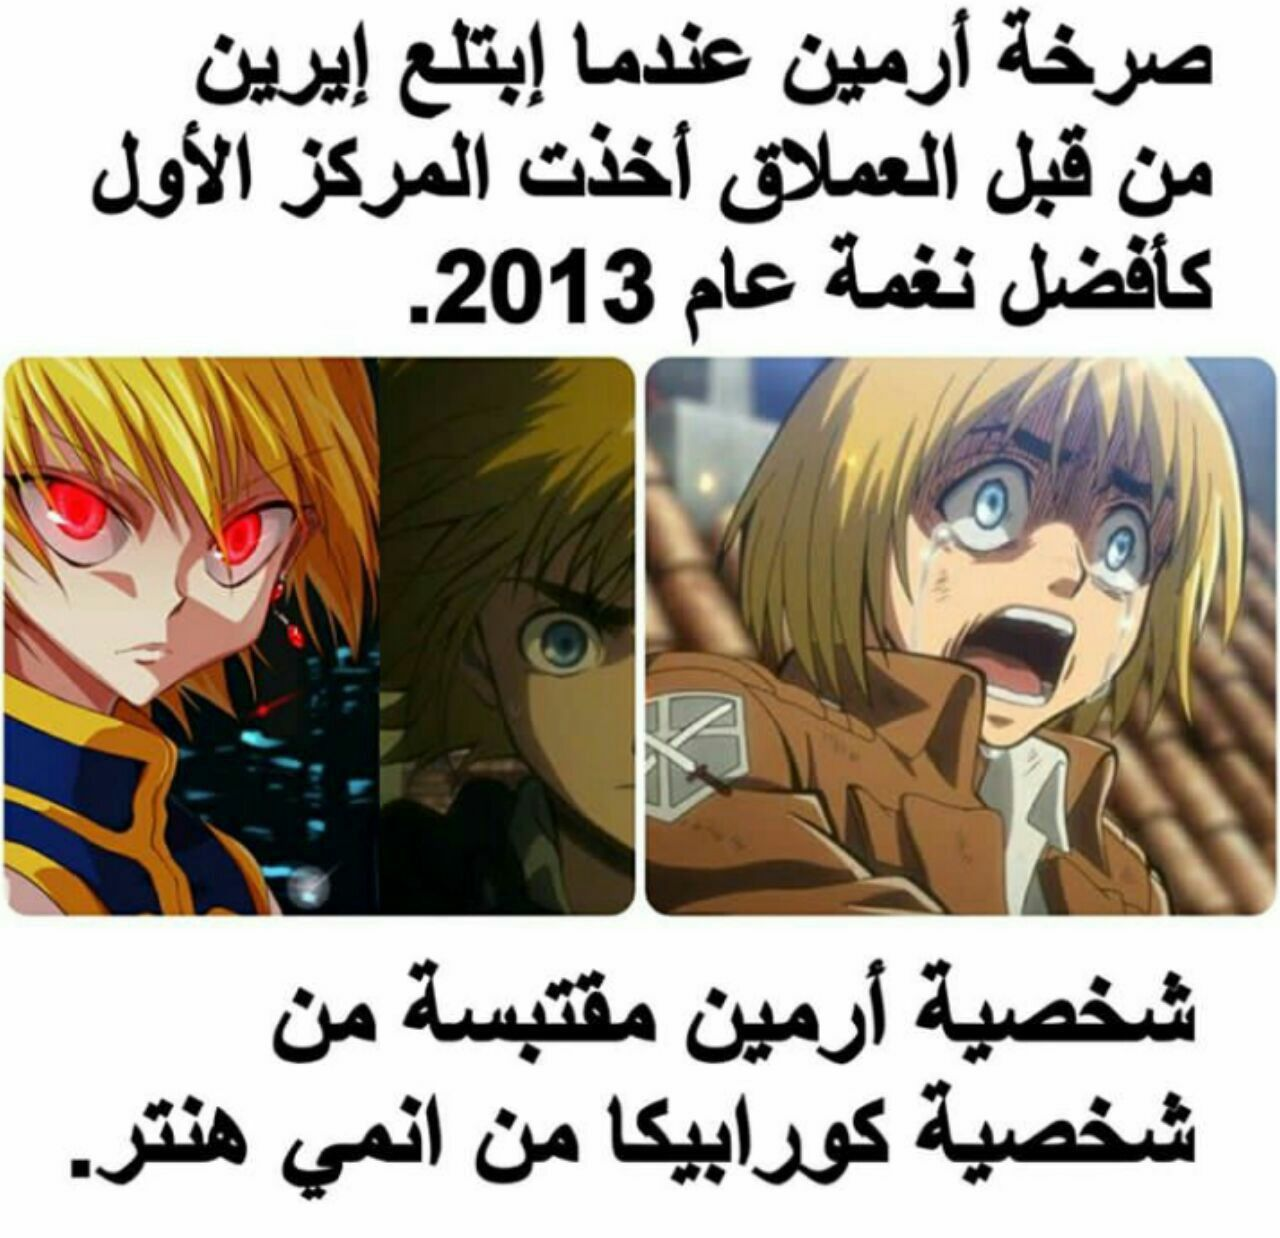 Pin By On معلومات انمي In 2020 Fictional Characters Anime Movie Posters